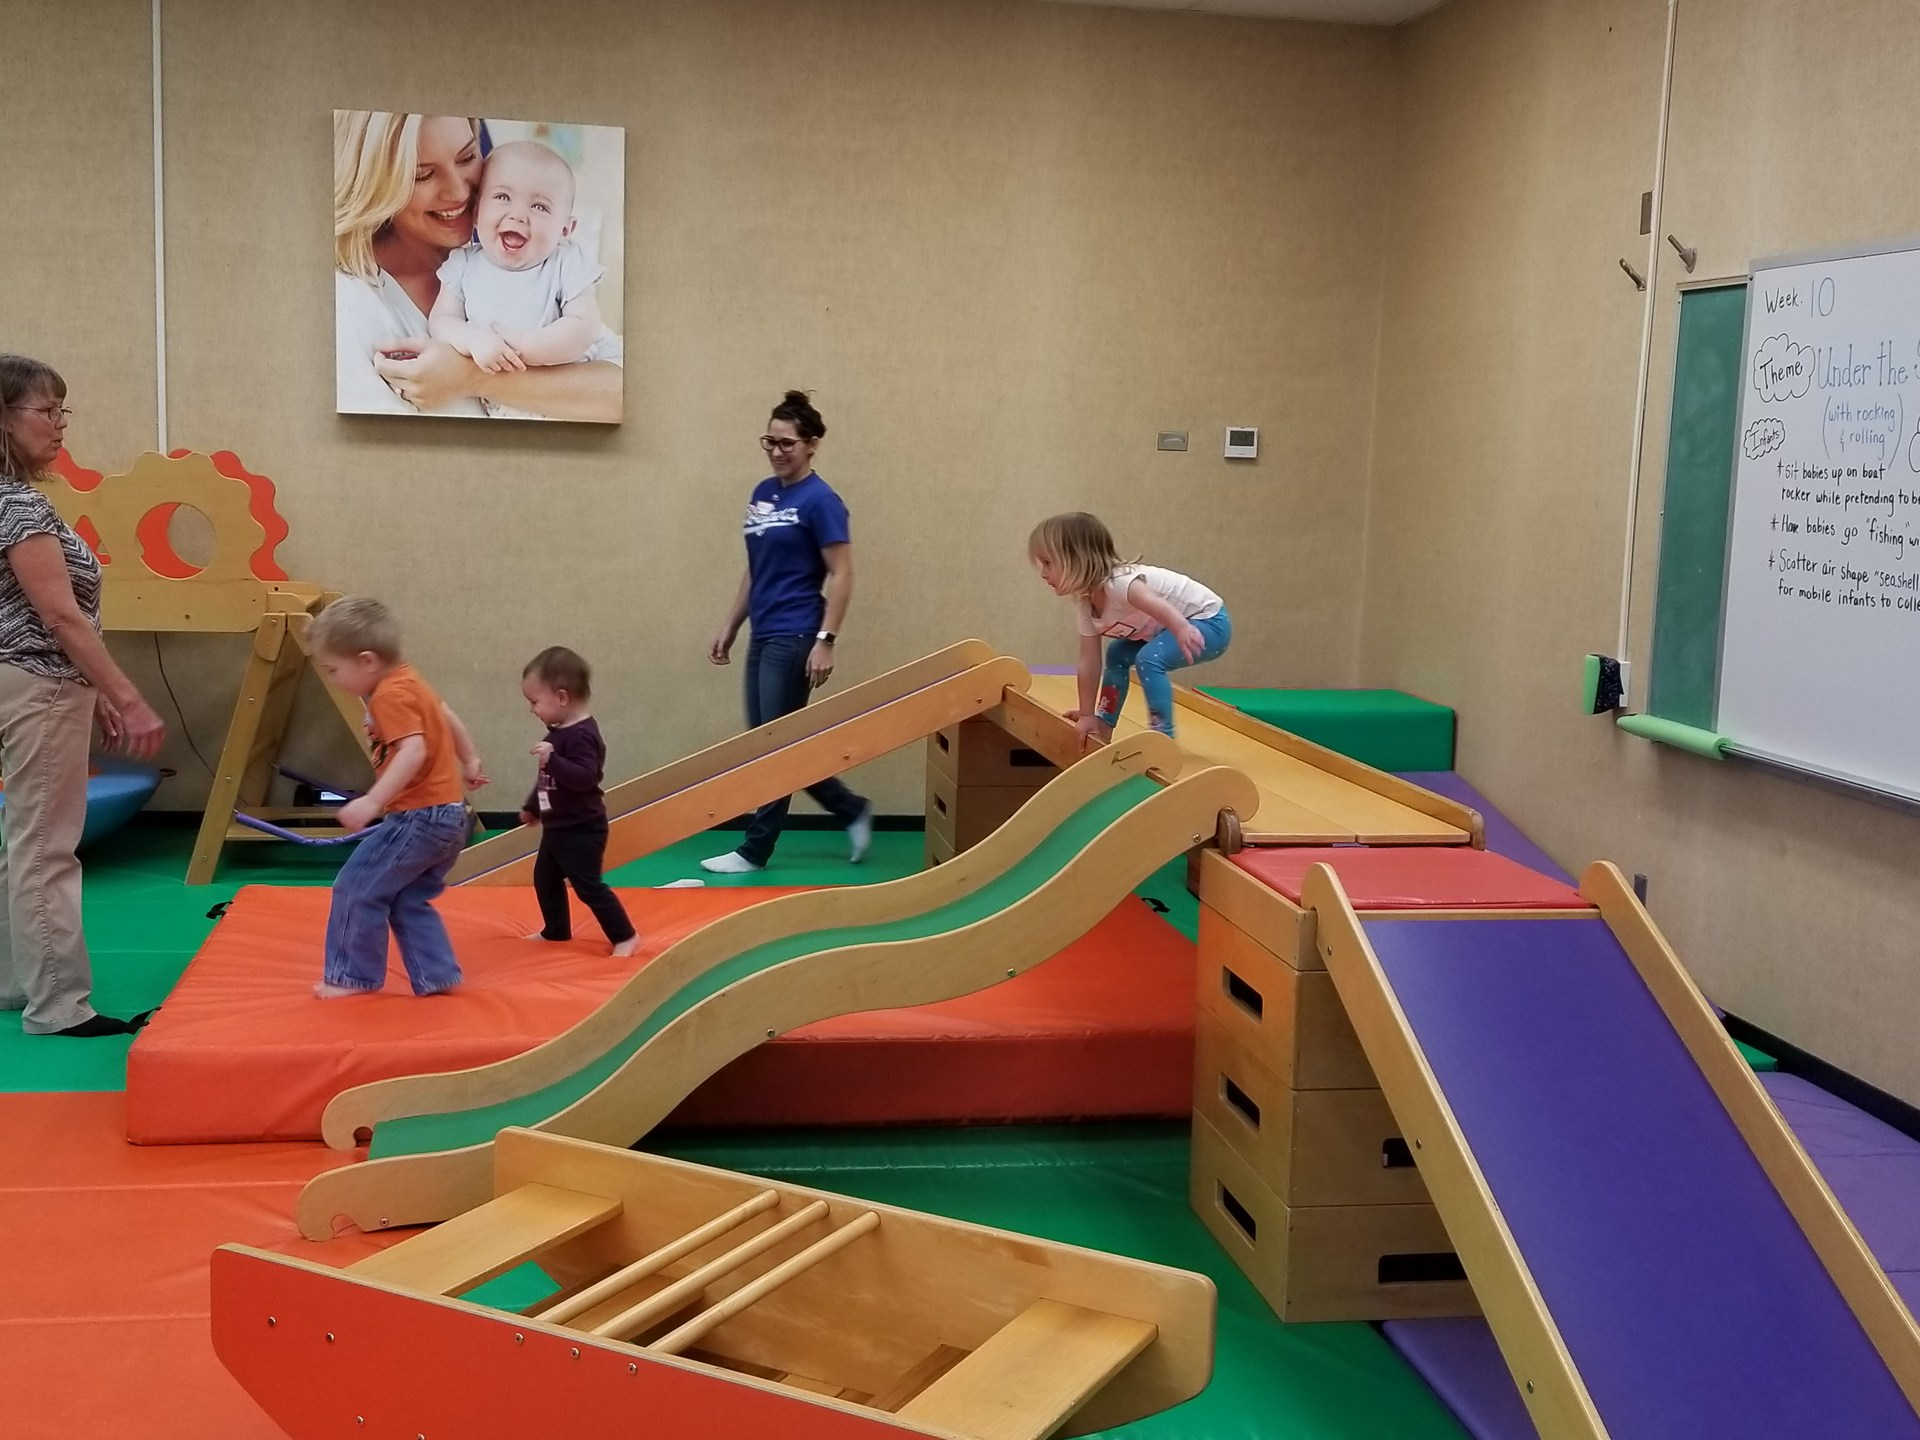 Children playing on Gymboree slides